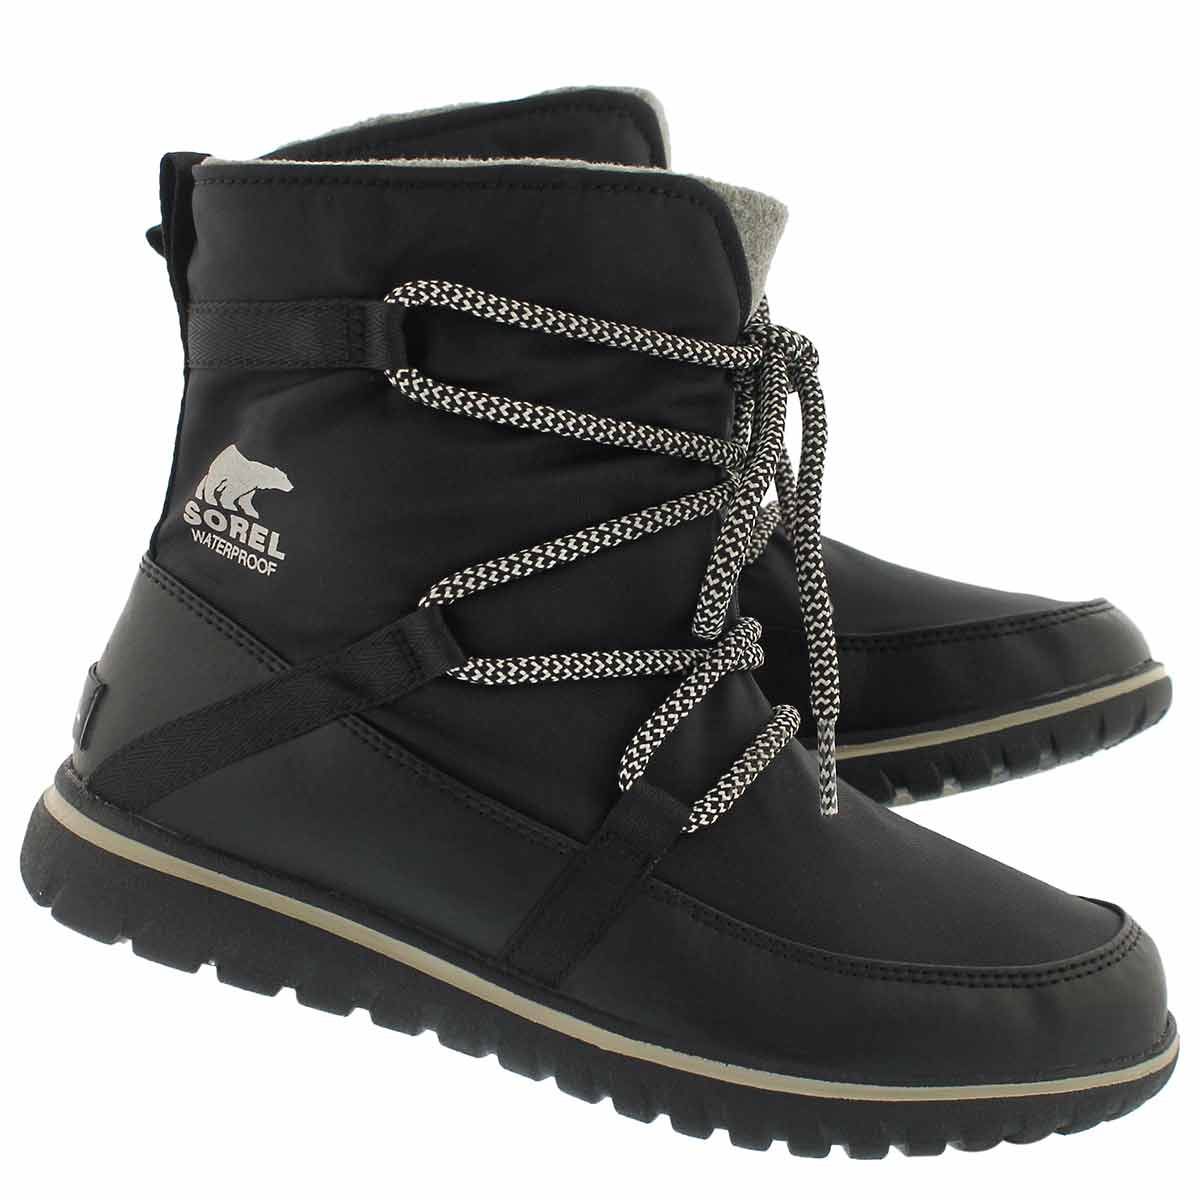 Lds Cozy Explorer black wtpf boot